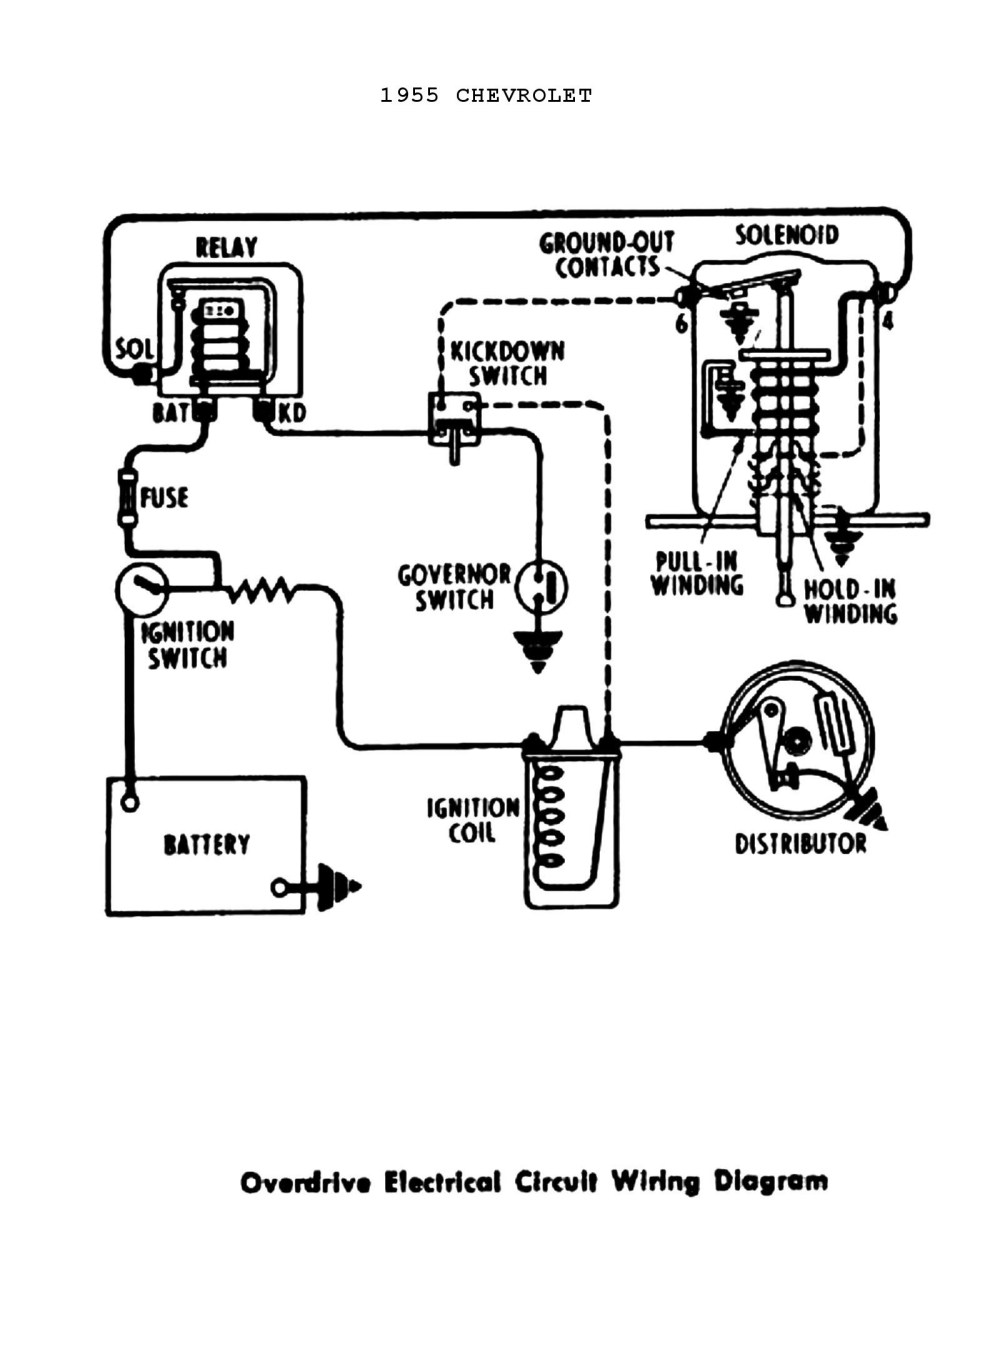 medium resolution of mack truck fuel system diagram 1955 chevy fuel tank diagram 1955 chevy ignition wiring diagram of